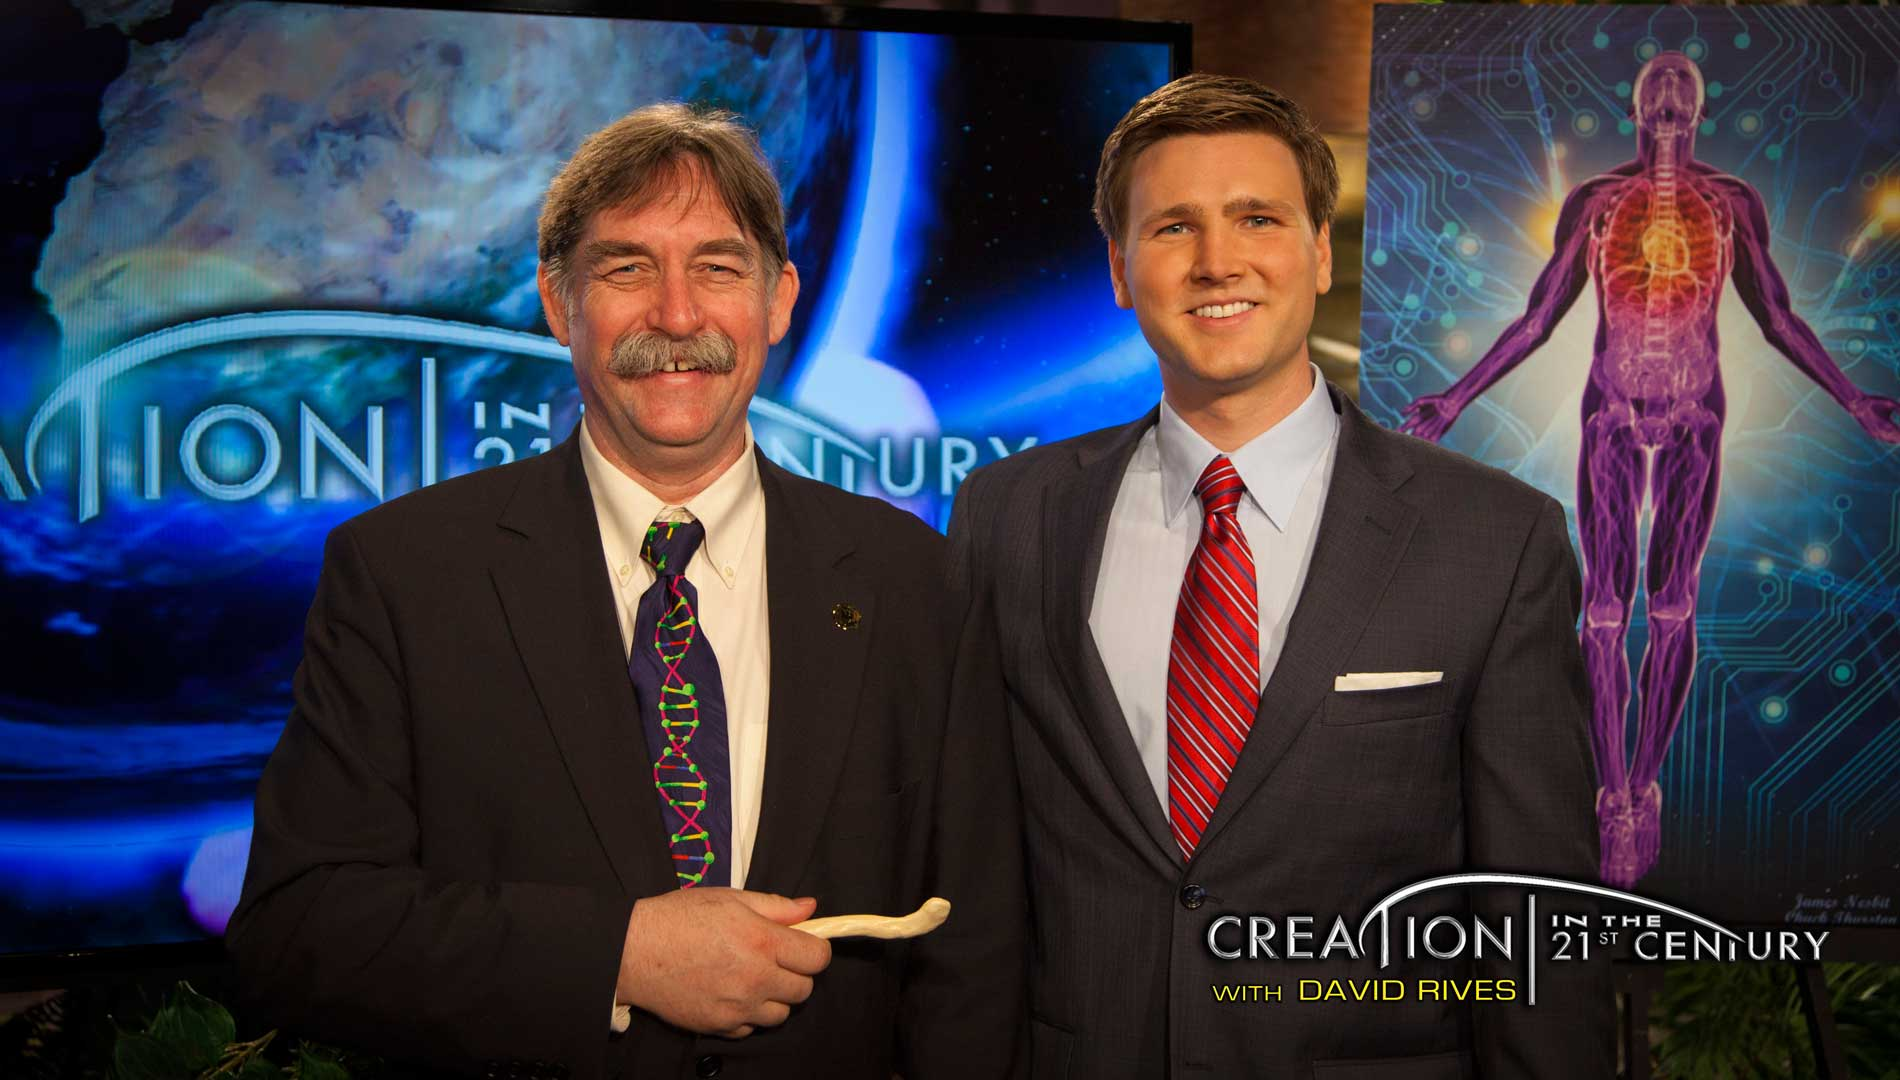 Tuesday on the CHURCH CHANNEL – Medical Doctor Reveals Amazing Patterns In The Human Body